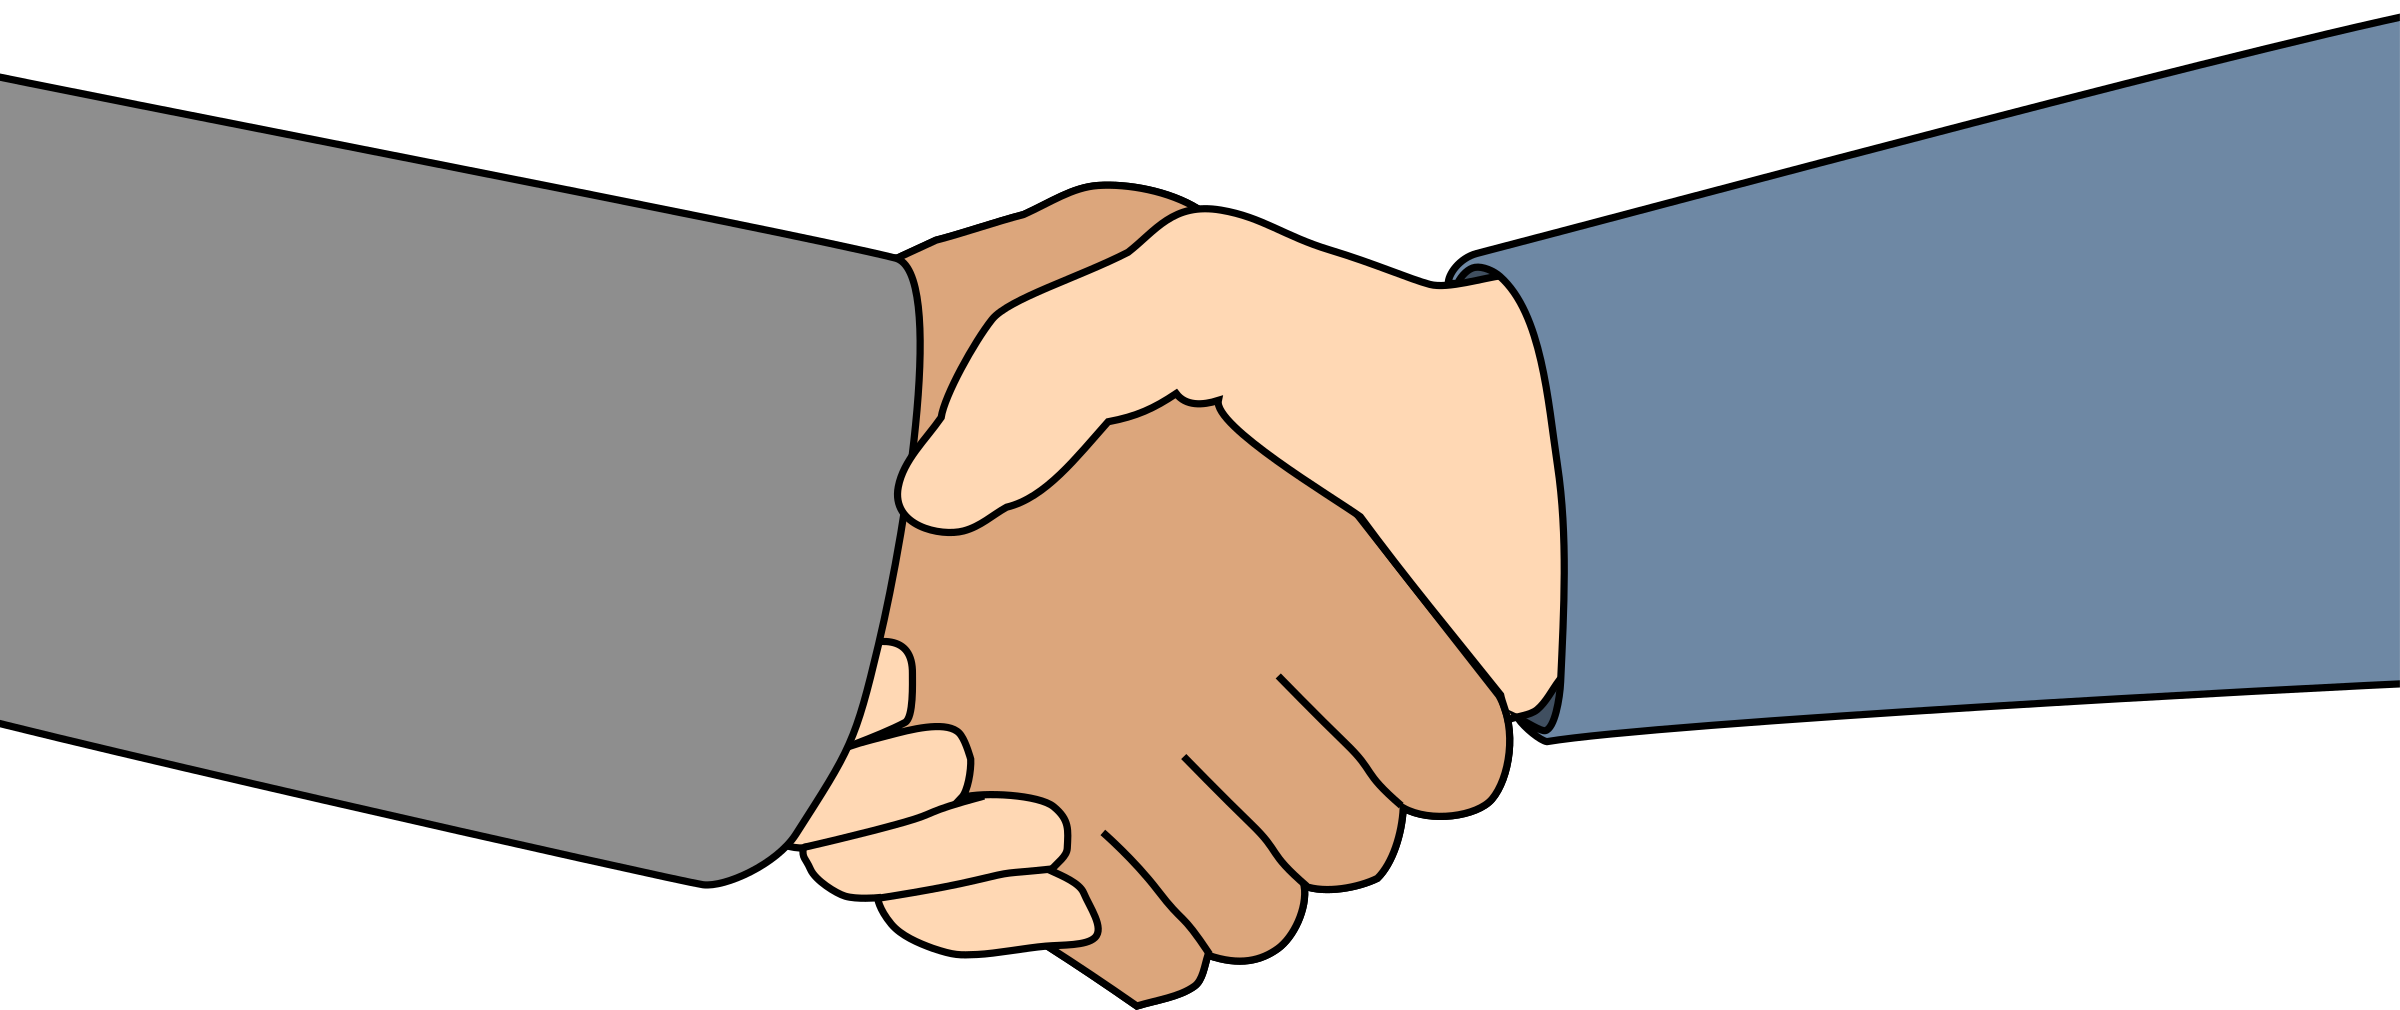 clipart library library Big image png. Handshake clipart.